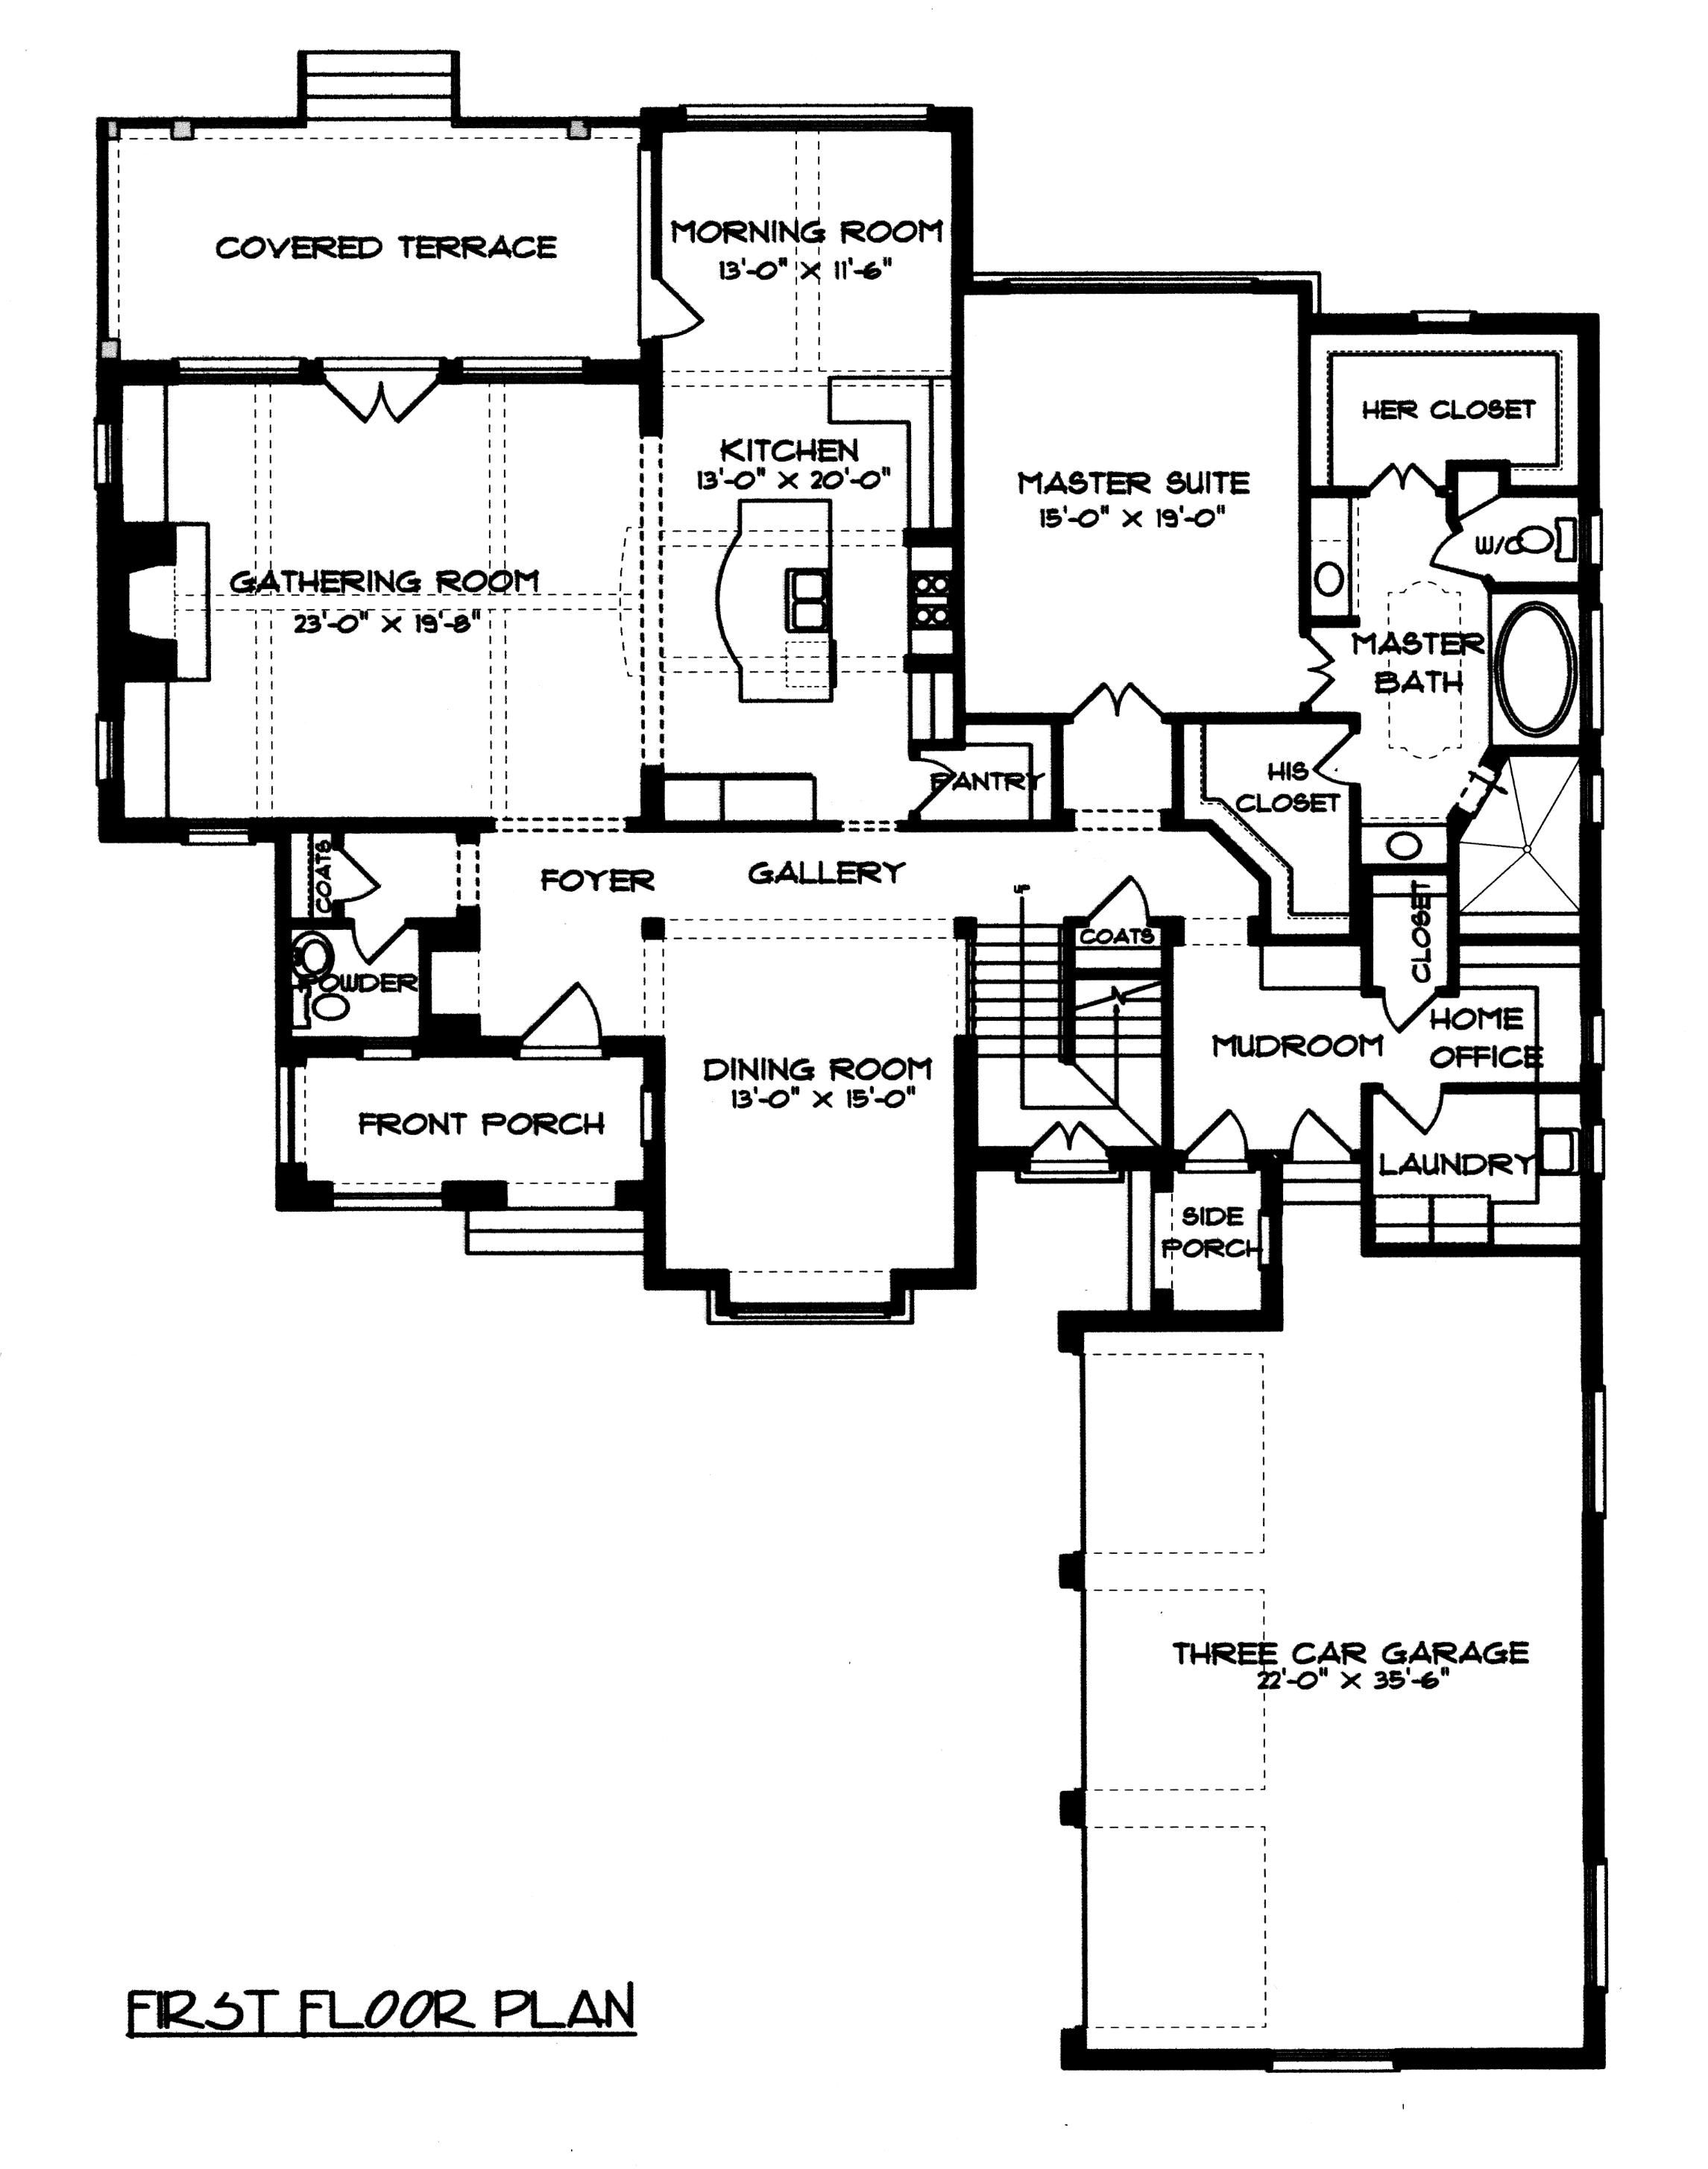 images about homes on Pinterest   Floor plans  Ground floor       images about homes on Pinterest   Floor plans  Ground floor and Andrew carnegie